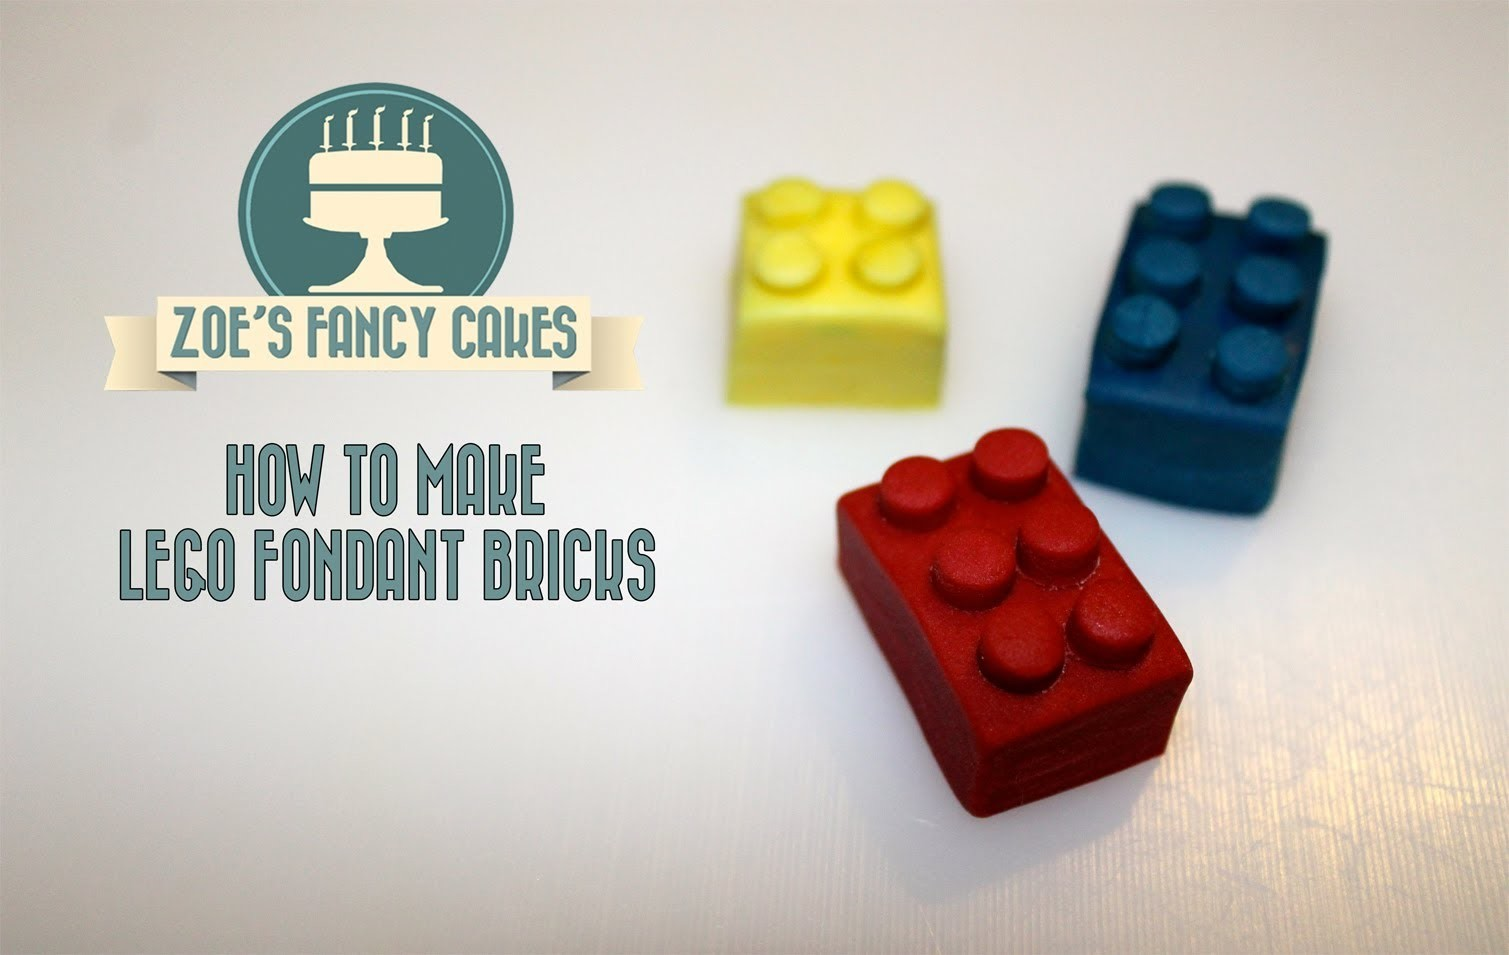 How to make icing lego blocks for cake decorating How To Tutorial Zoes Fancy Cakes